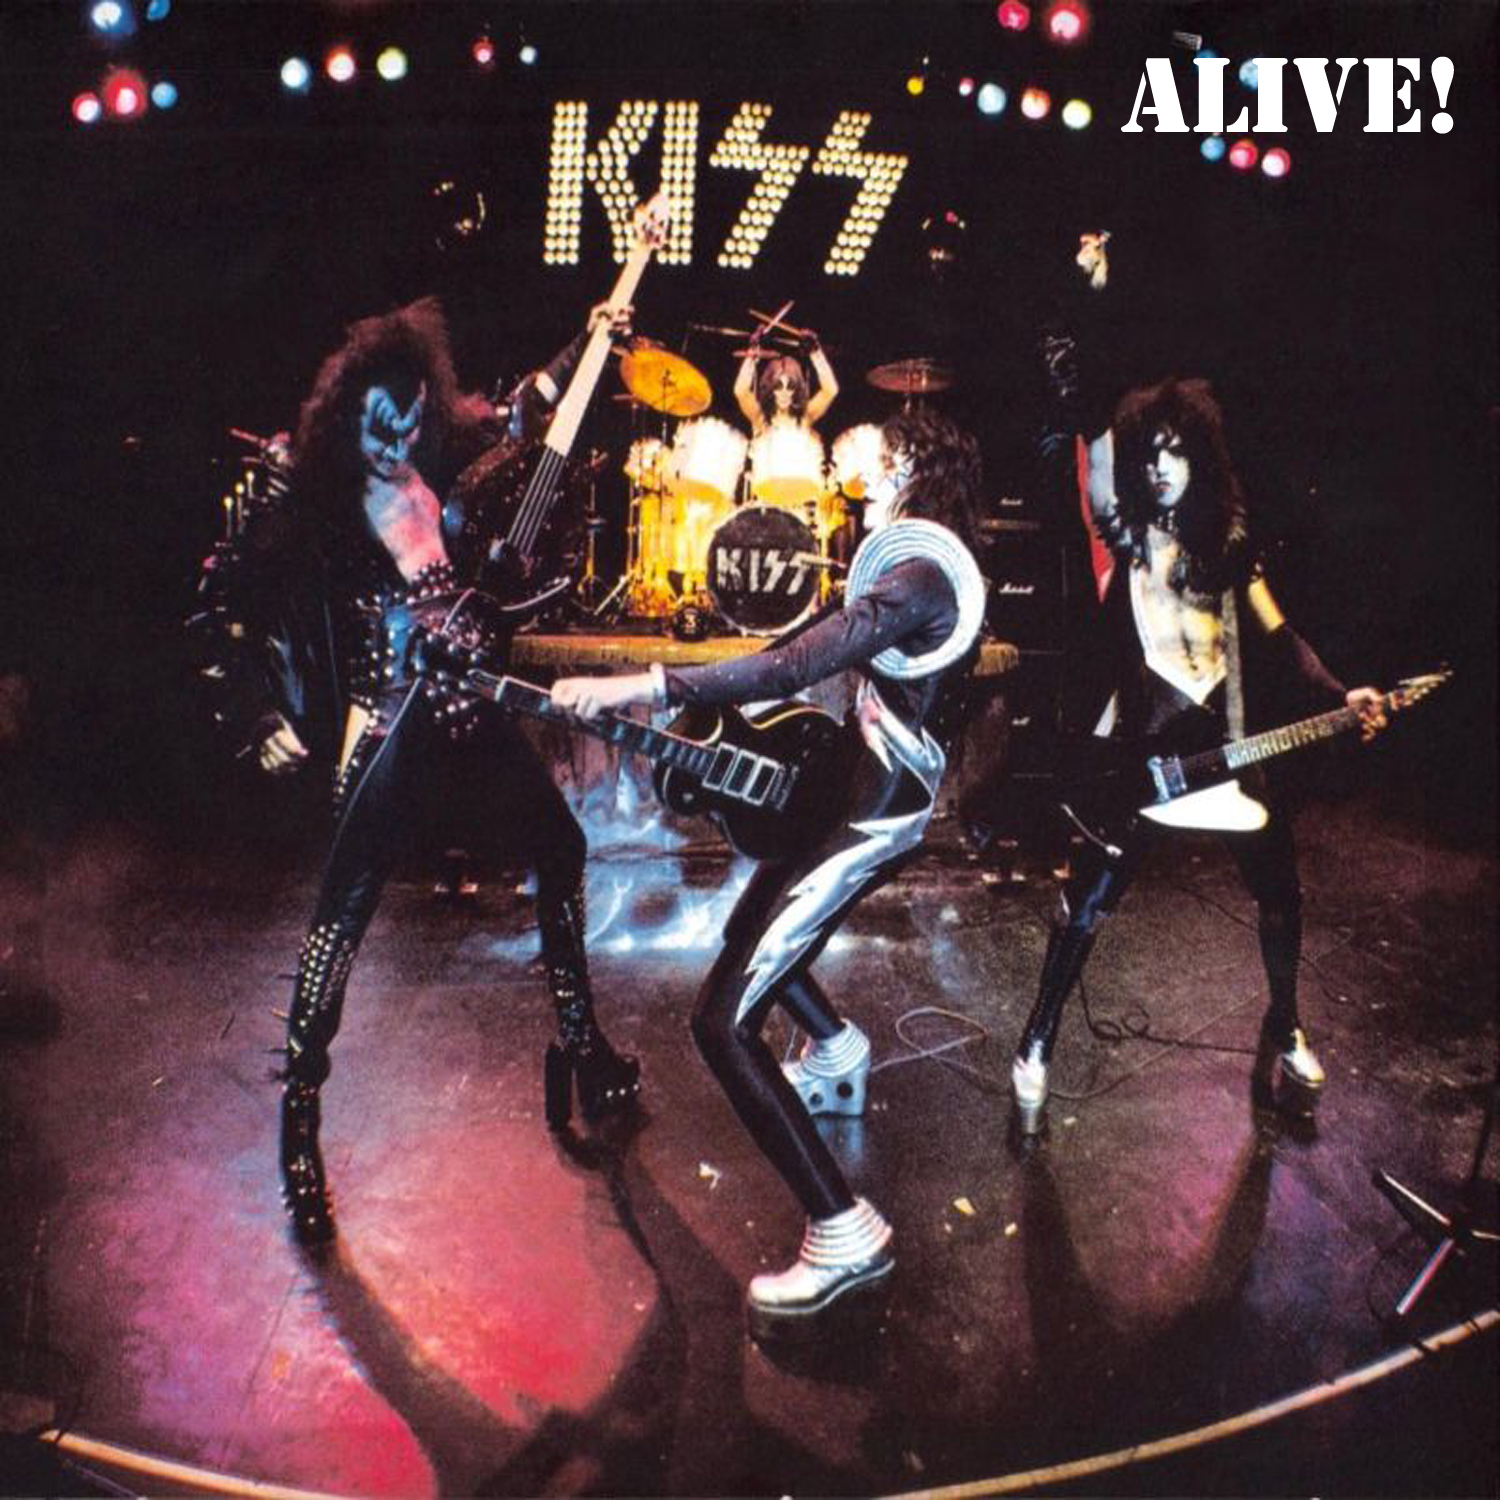 alive 10 Classic Live Albums Every Music Fan Should Own on Vinyl